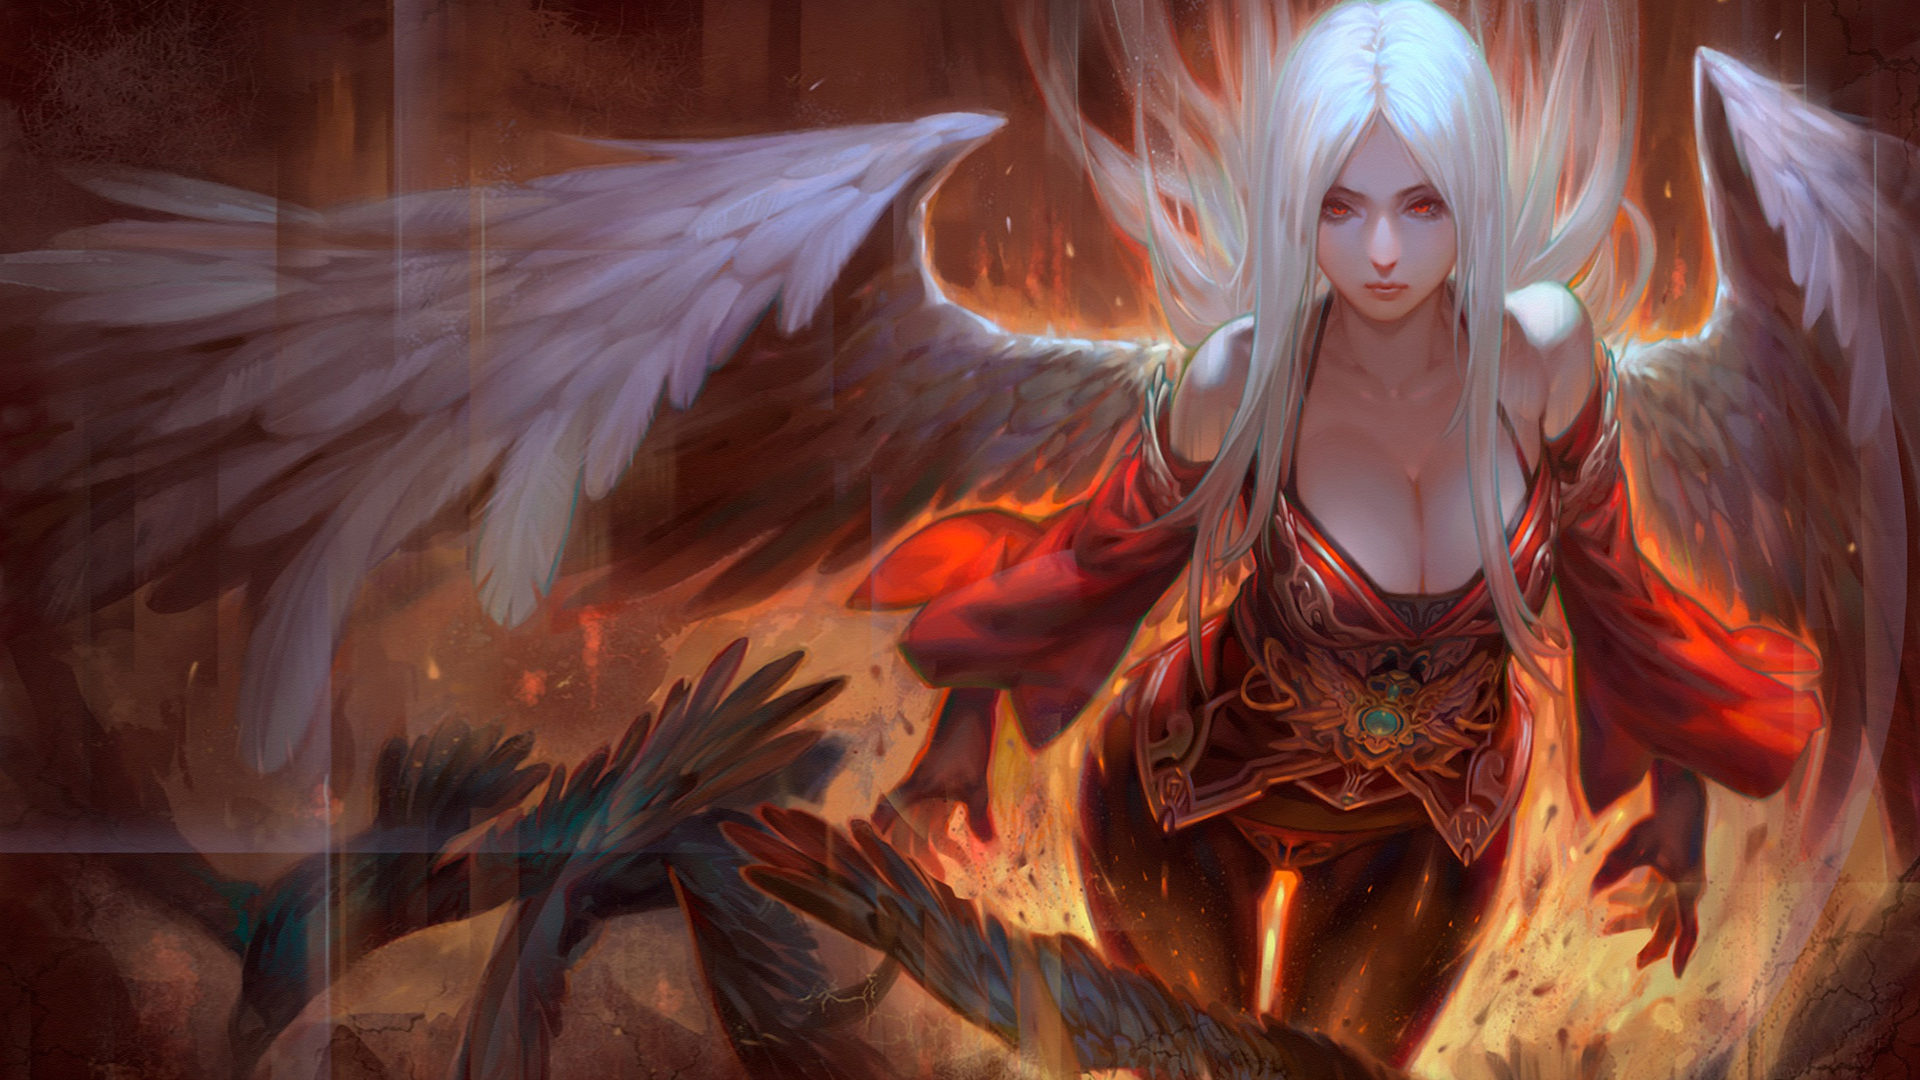 Cute Korean Girl Desktop Wallpaper Girl Angel White Hair Angel Wings And Red Eyes Fire Art